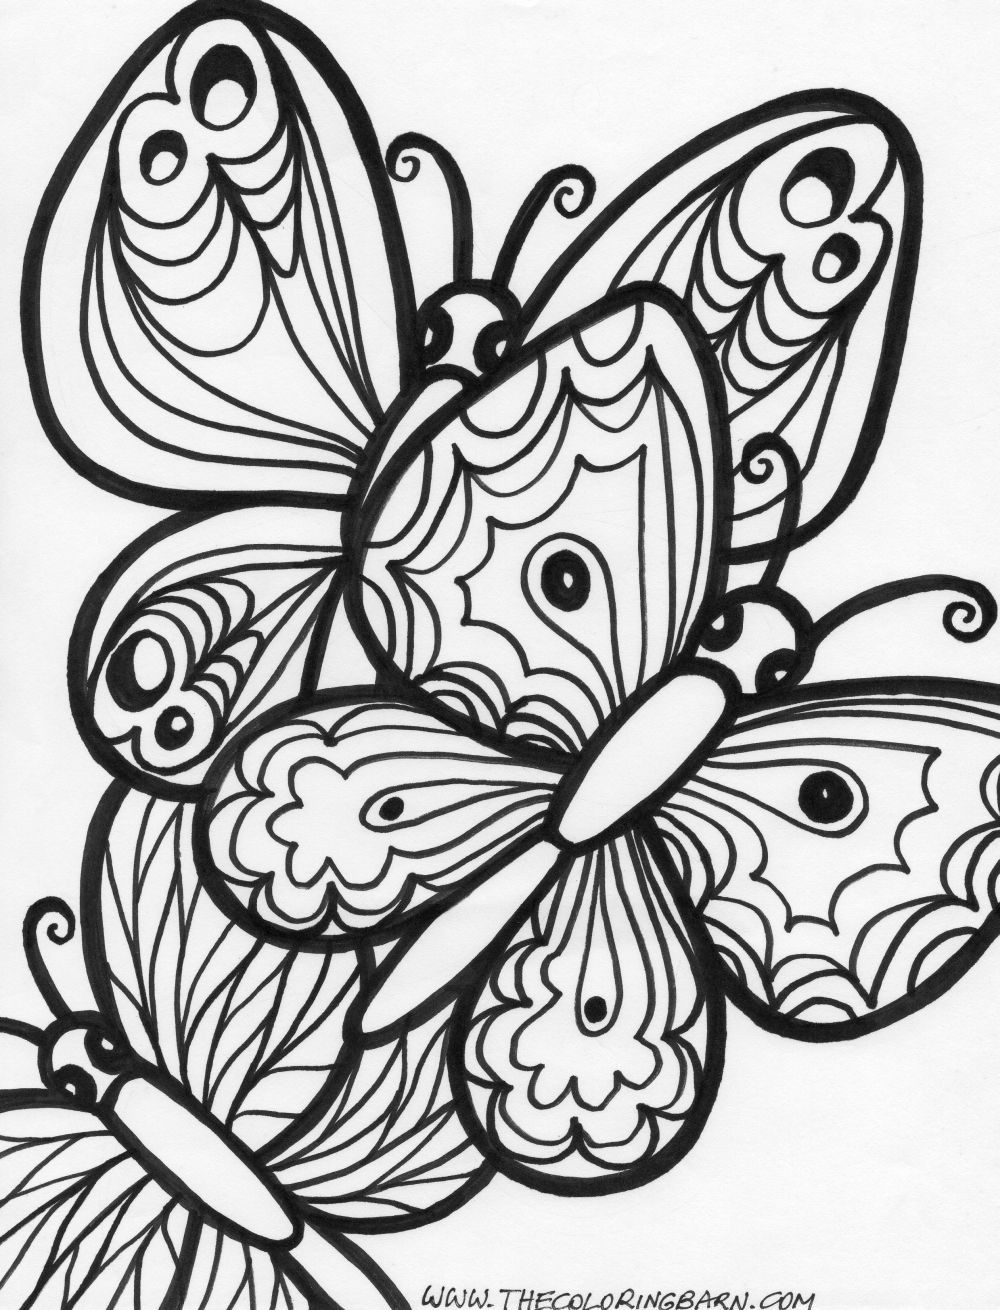 Free coloring pages butterfly - Butterfly The Coloring Barn Printable Coloring Pages